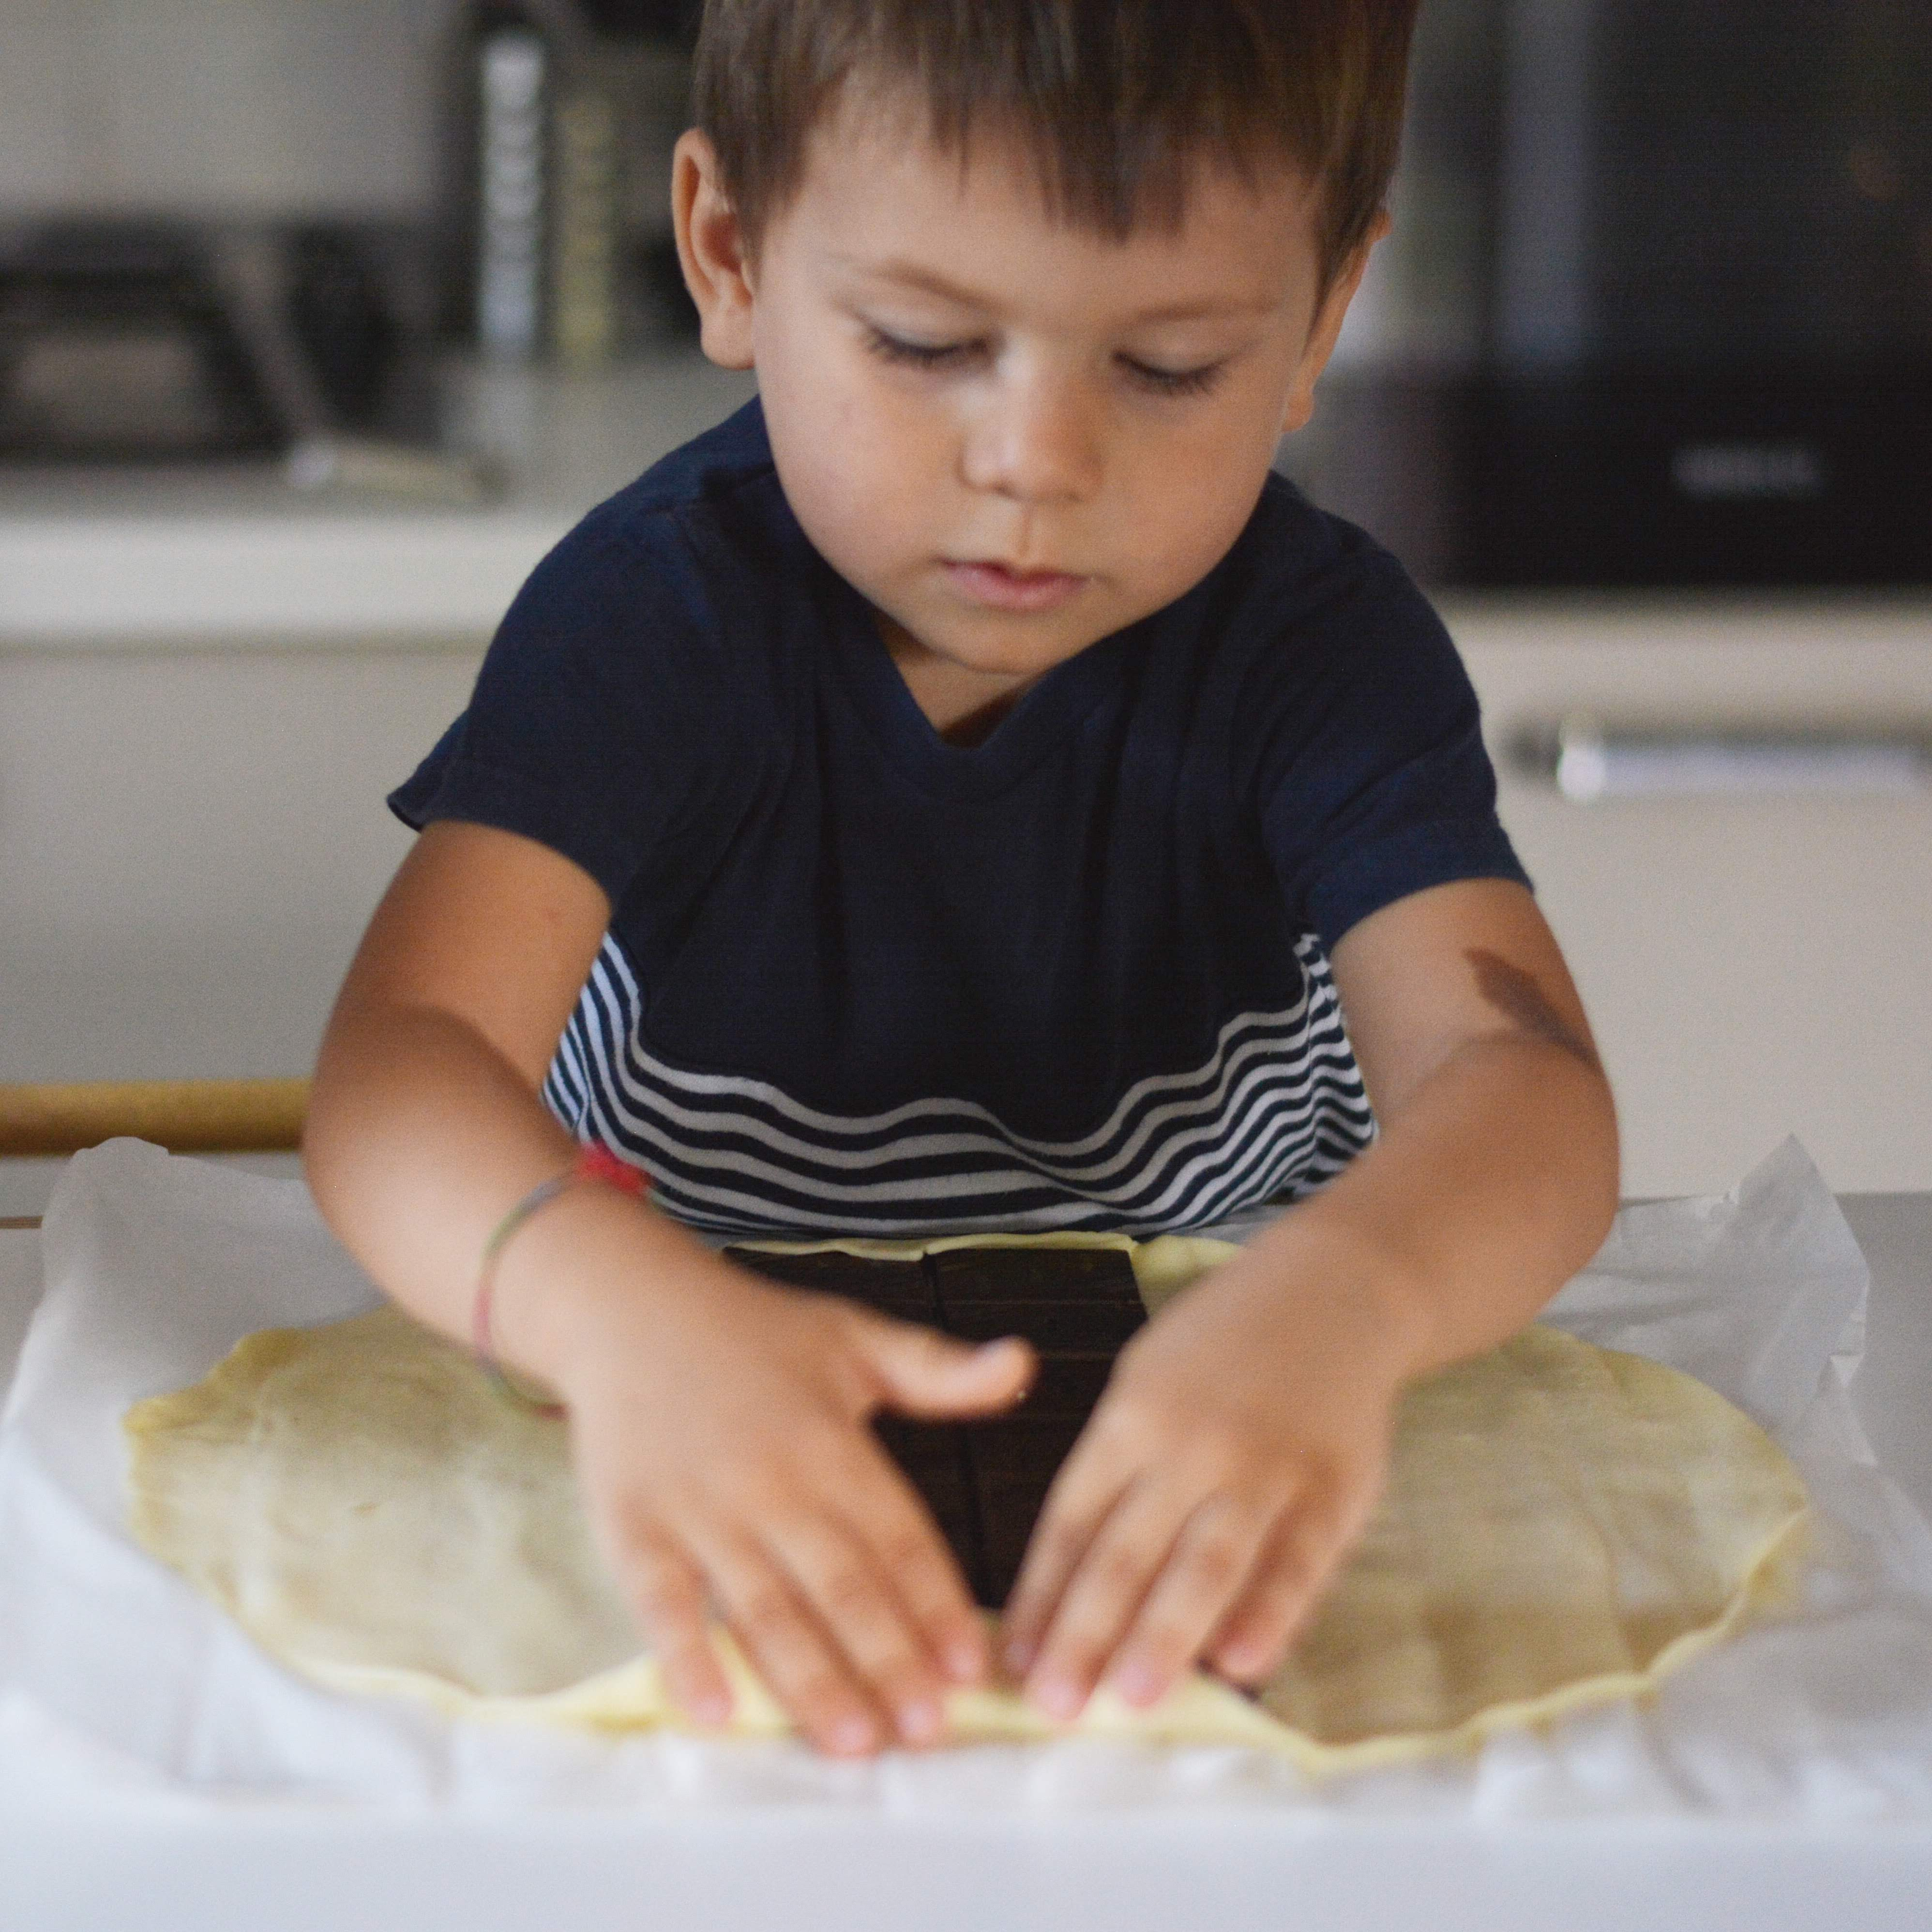 Fold the pastry sheet